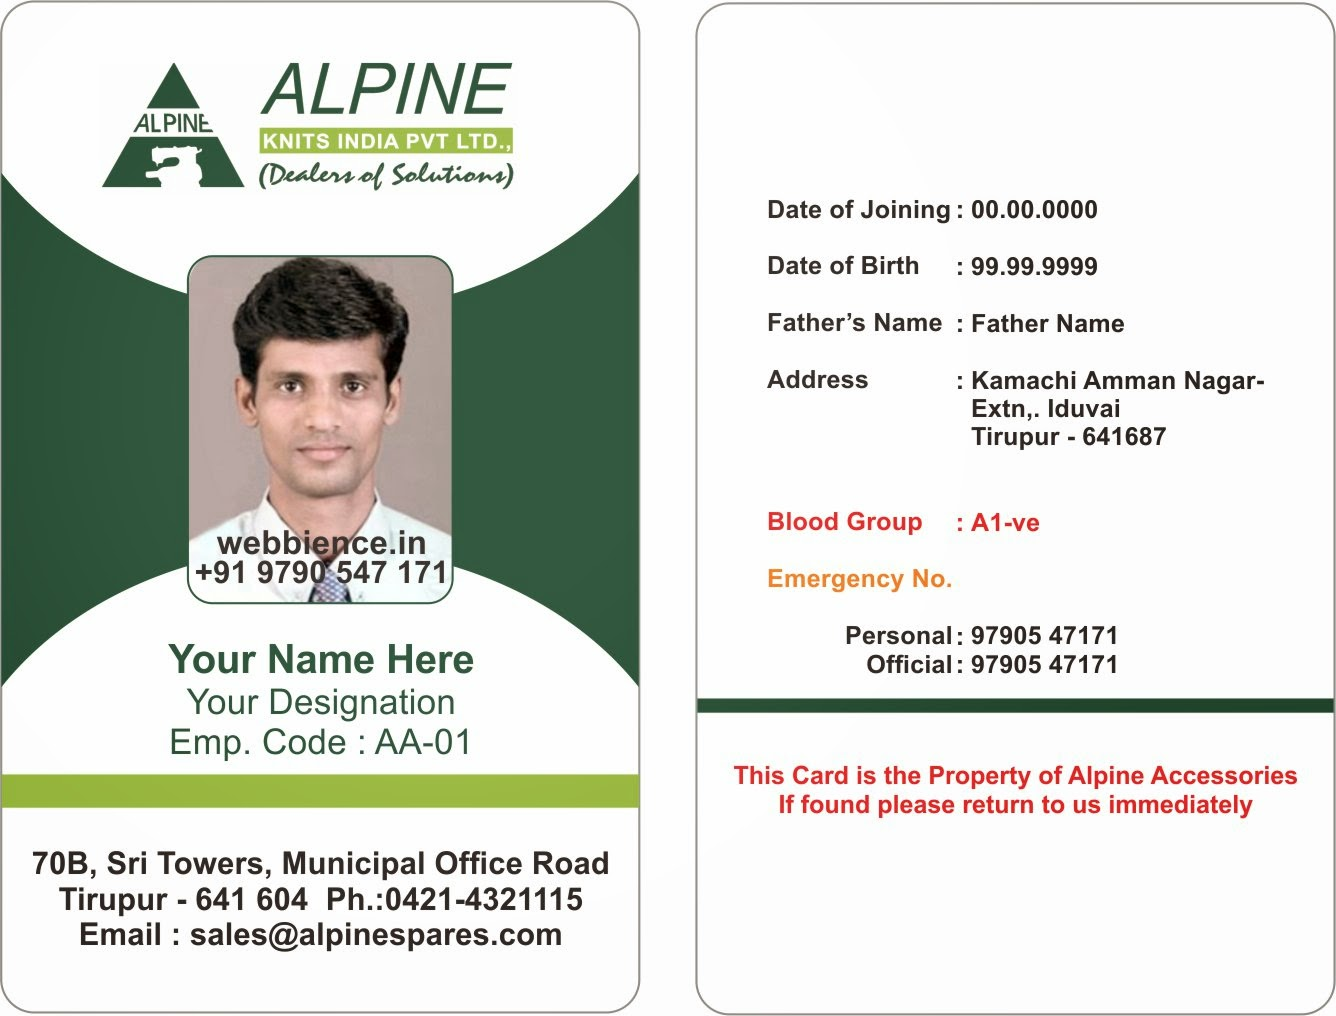 Template Galleries: Employee ID Card Templatres - New - 2014082c